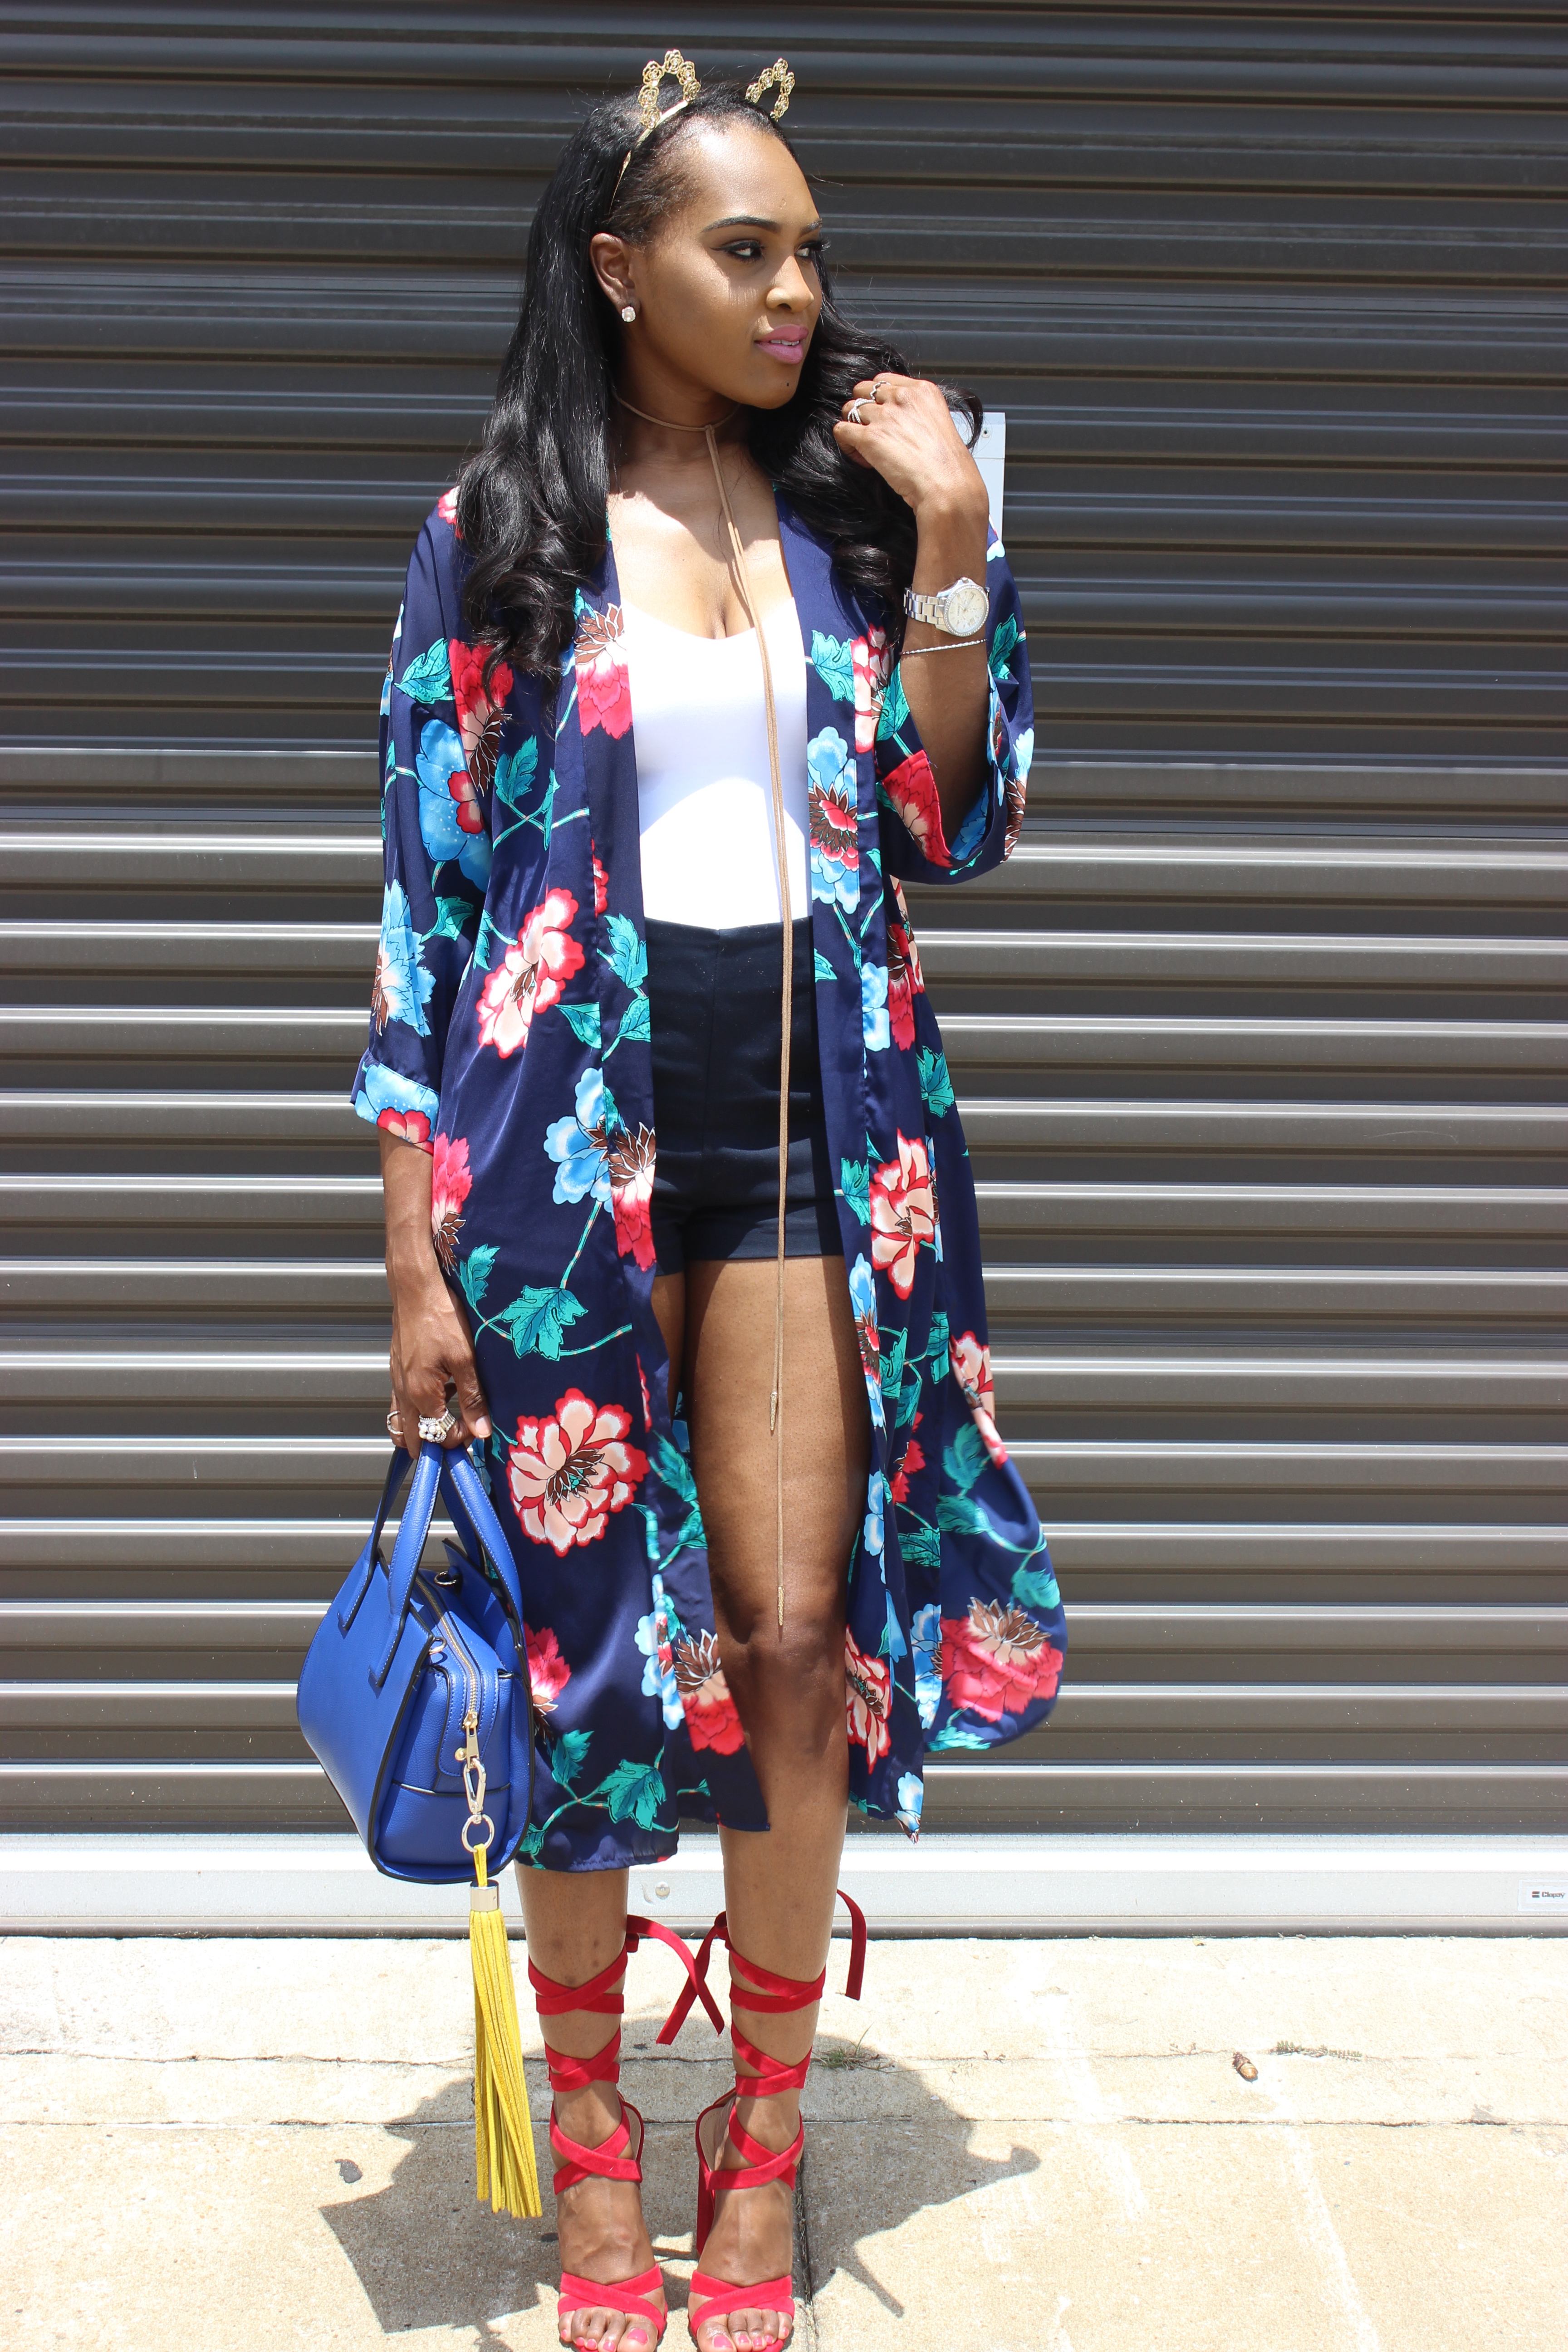 Style-files-Forever21-Blue-Ornate-Floral-Print-Kimono- Forever21-blue-shorts-with-side-silver-buckles-red-lace-up-public-desire-block-heels-forever21-white-strappy-backless-bodysuit-how-to-wear-kimono-oohlalablog-18